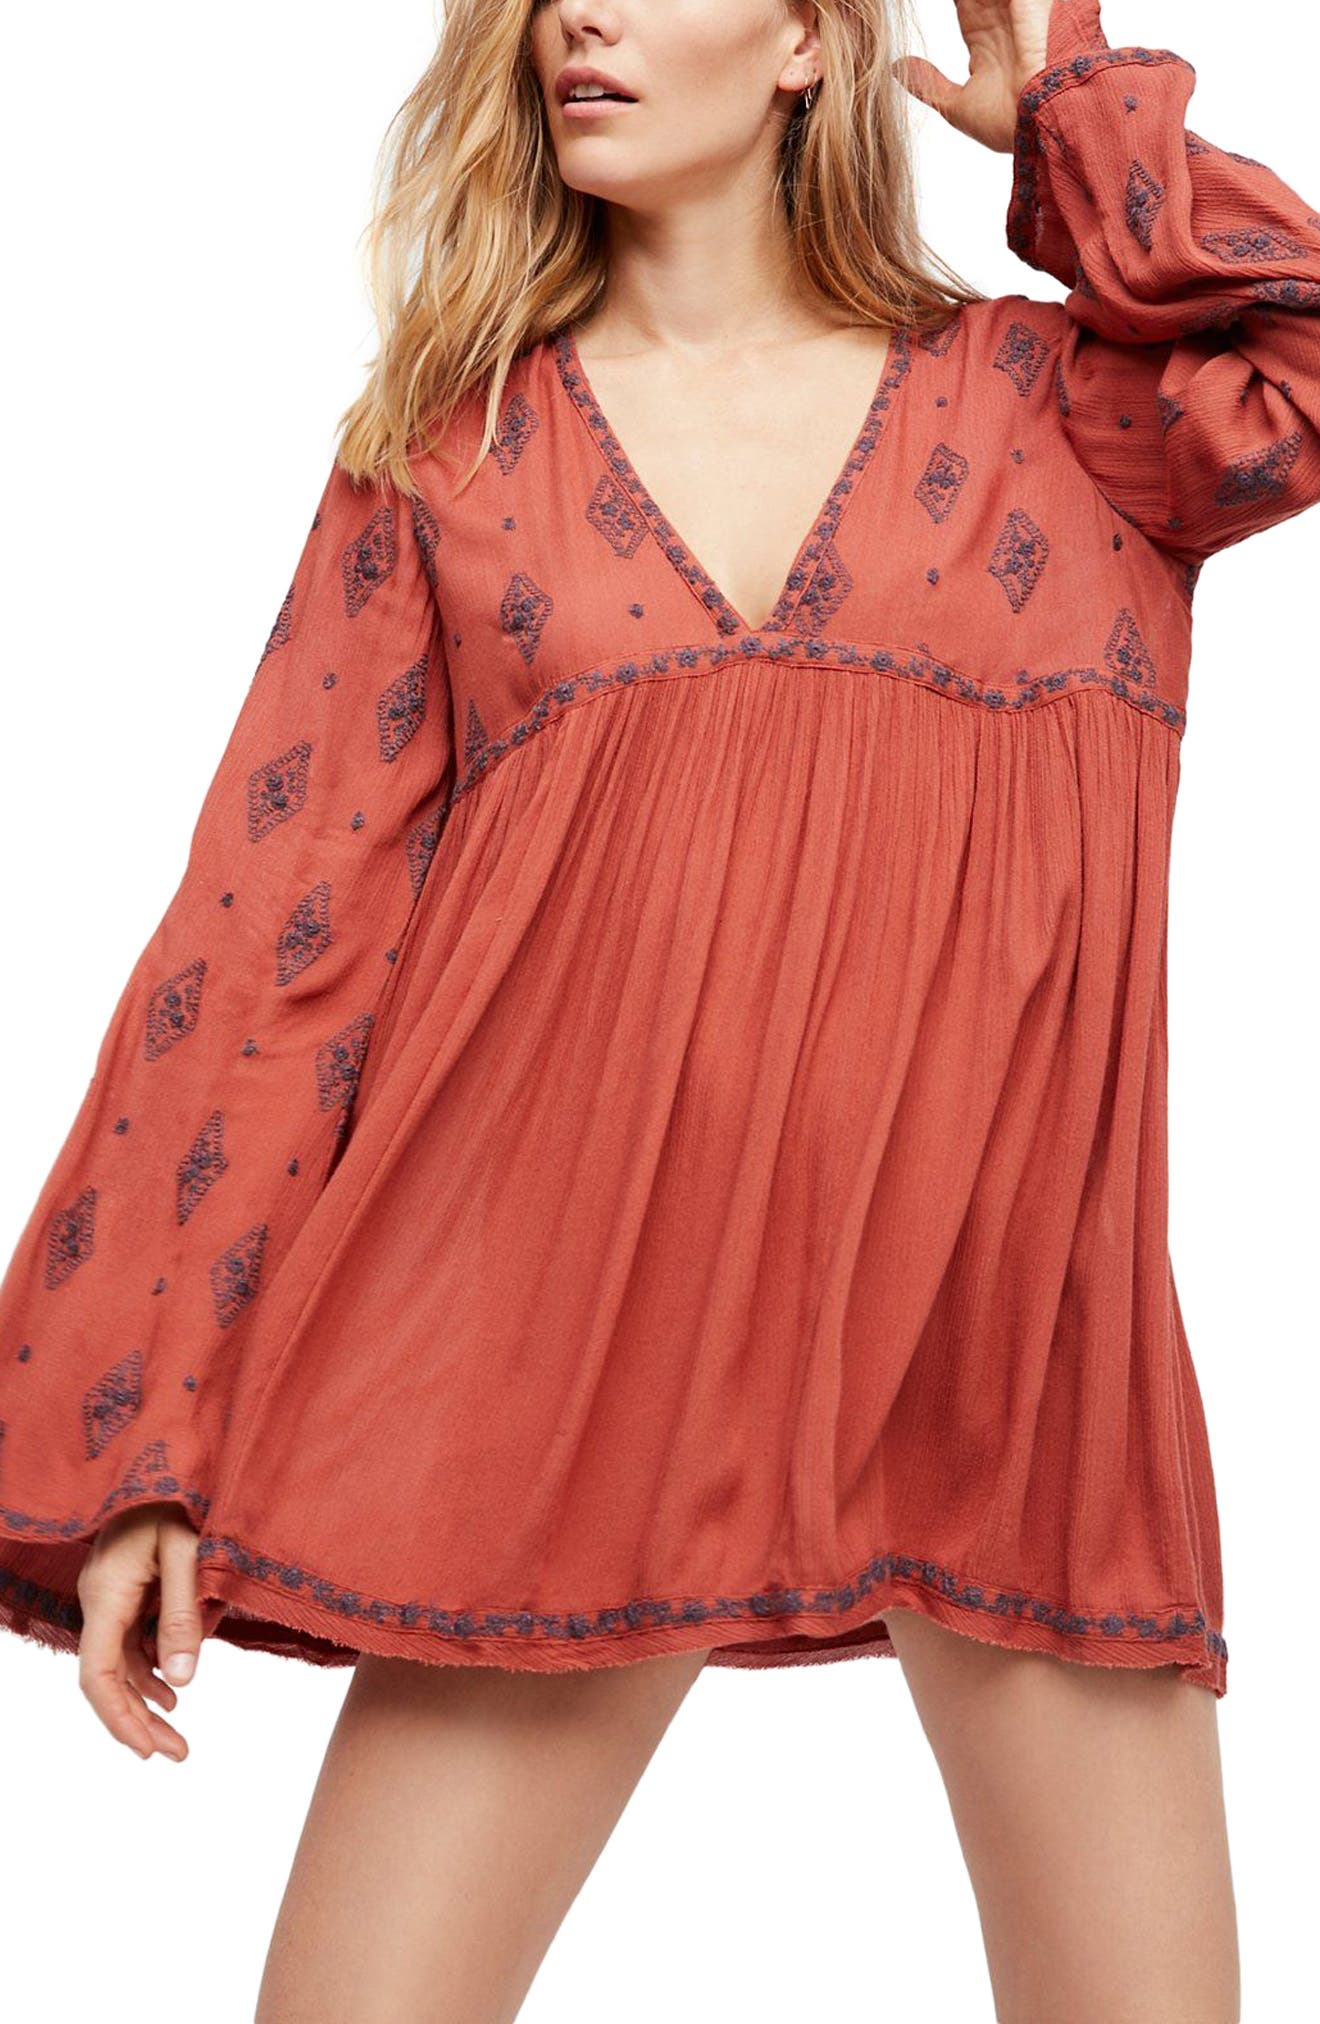 Alternate Image 1 Selected - Free People Embroidered Bell Sleeve Top